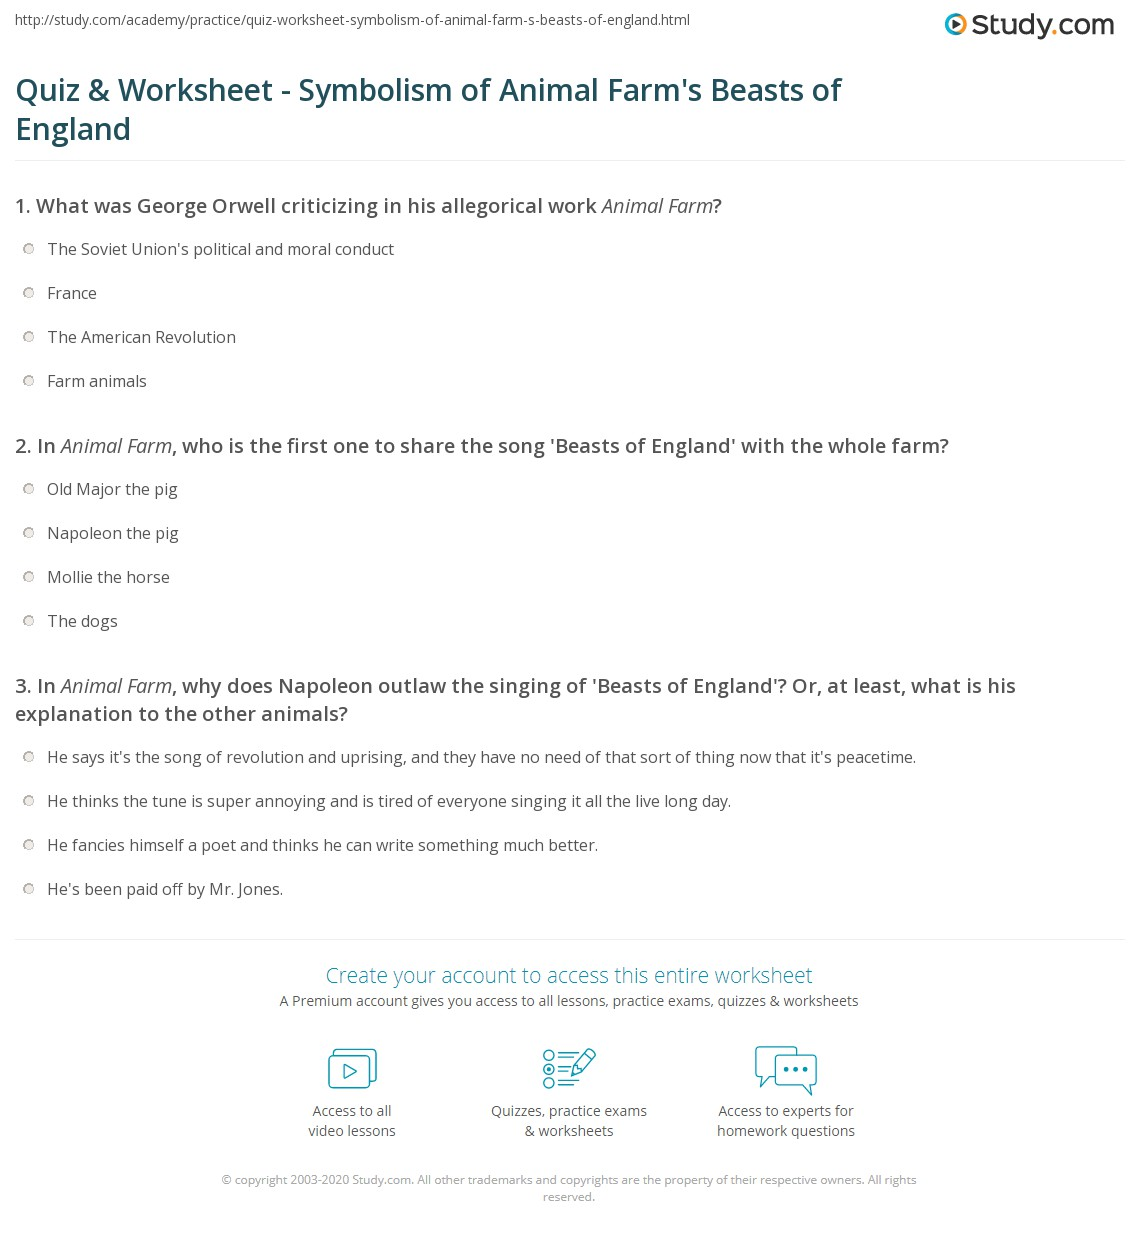 Quiz Worksheet Symbolism Of Animal Farms Beasts Of England